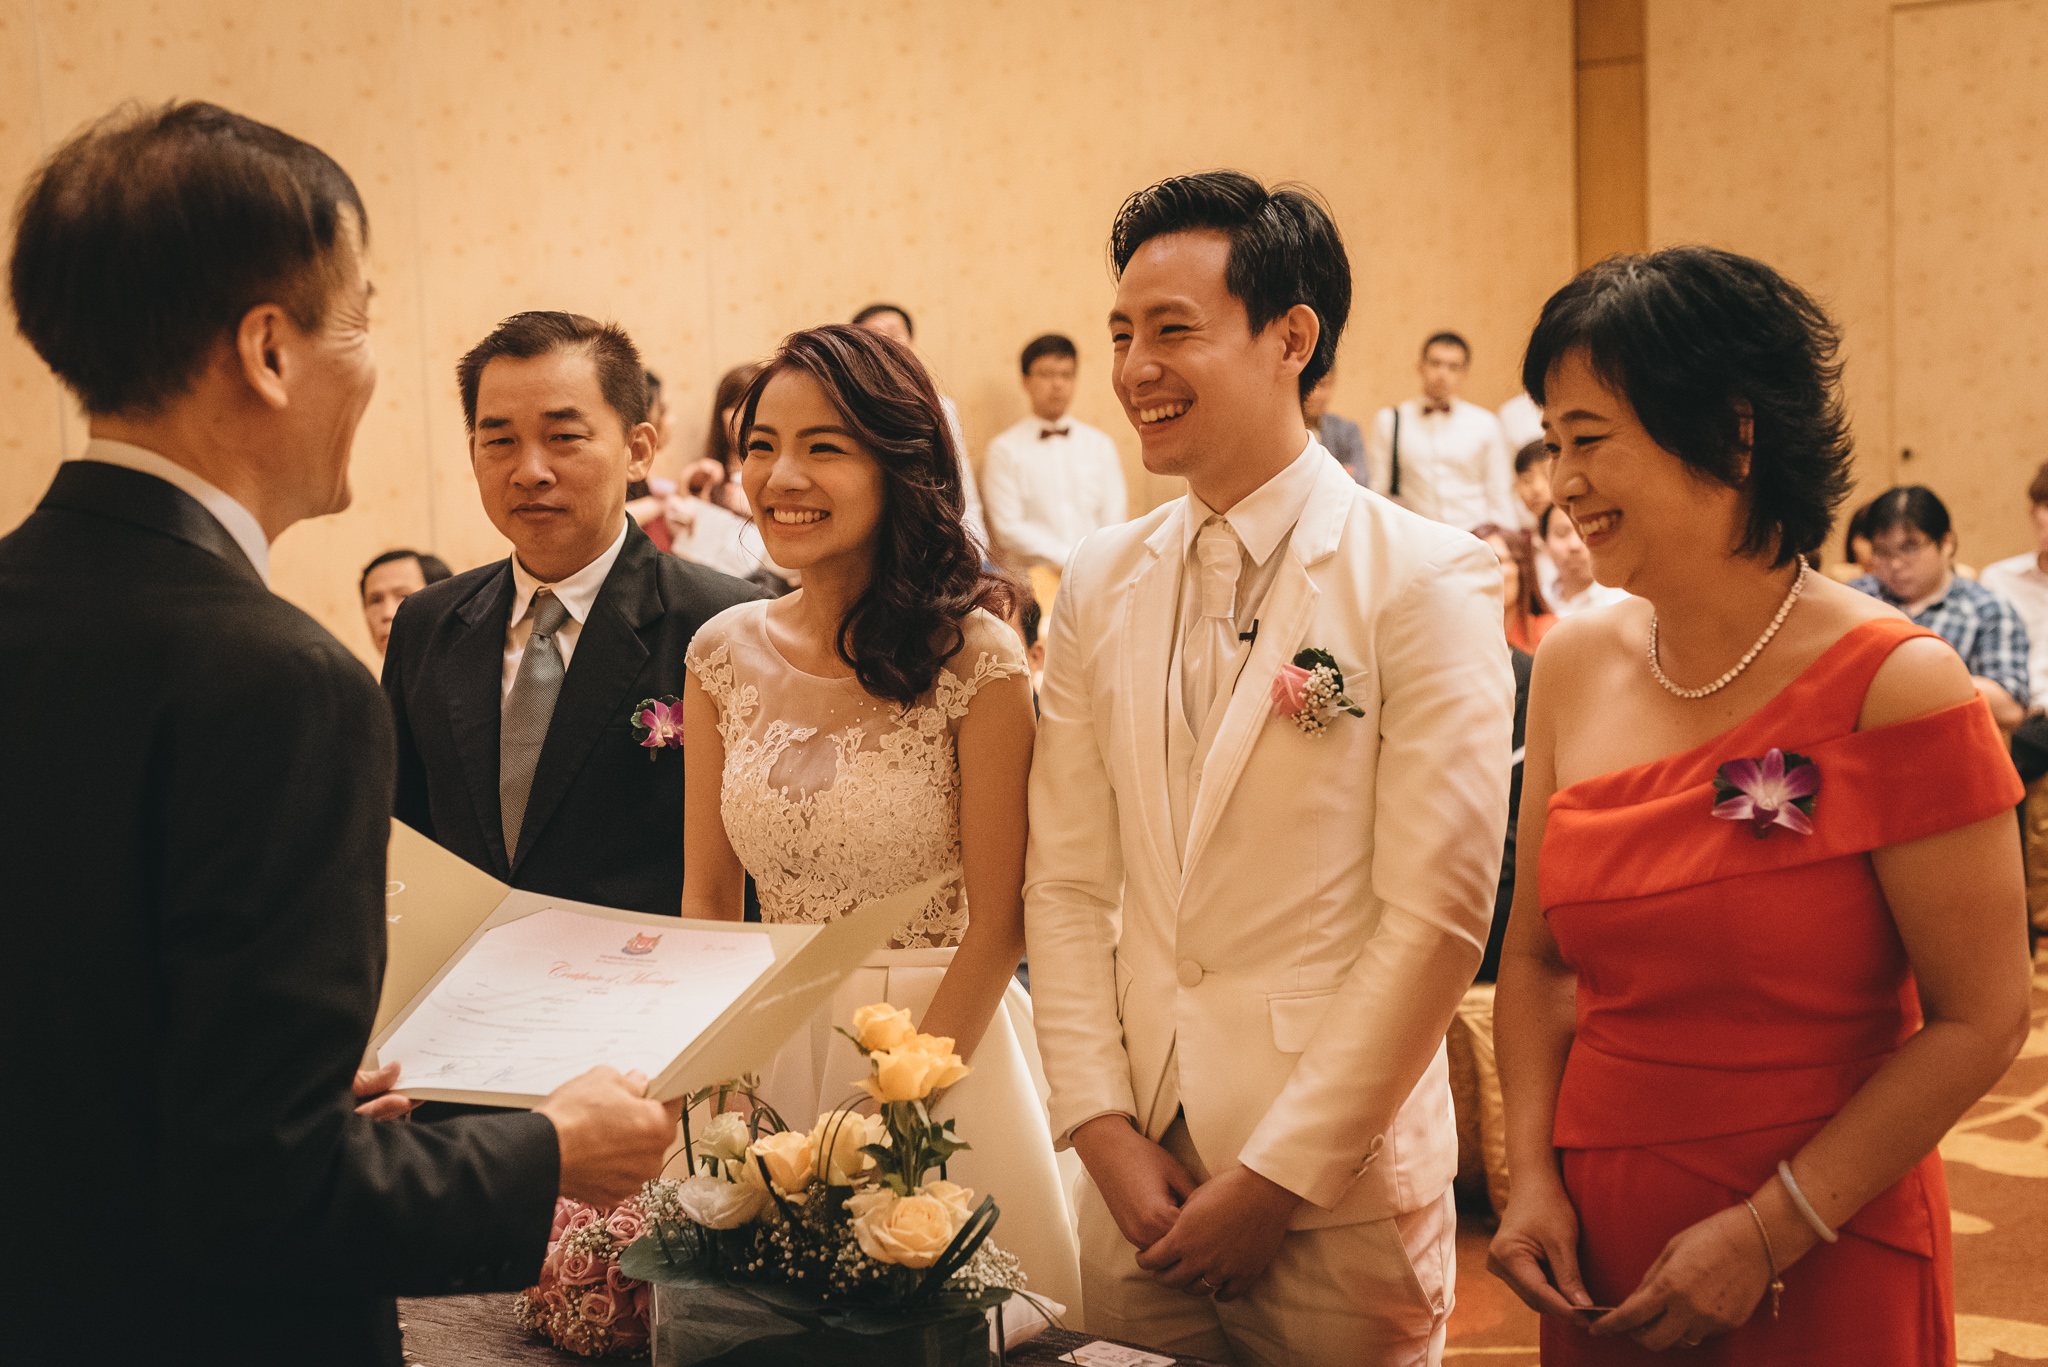 Fiona & Terence Wedding Day Highlights (resized for sharing) - 182.jpg